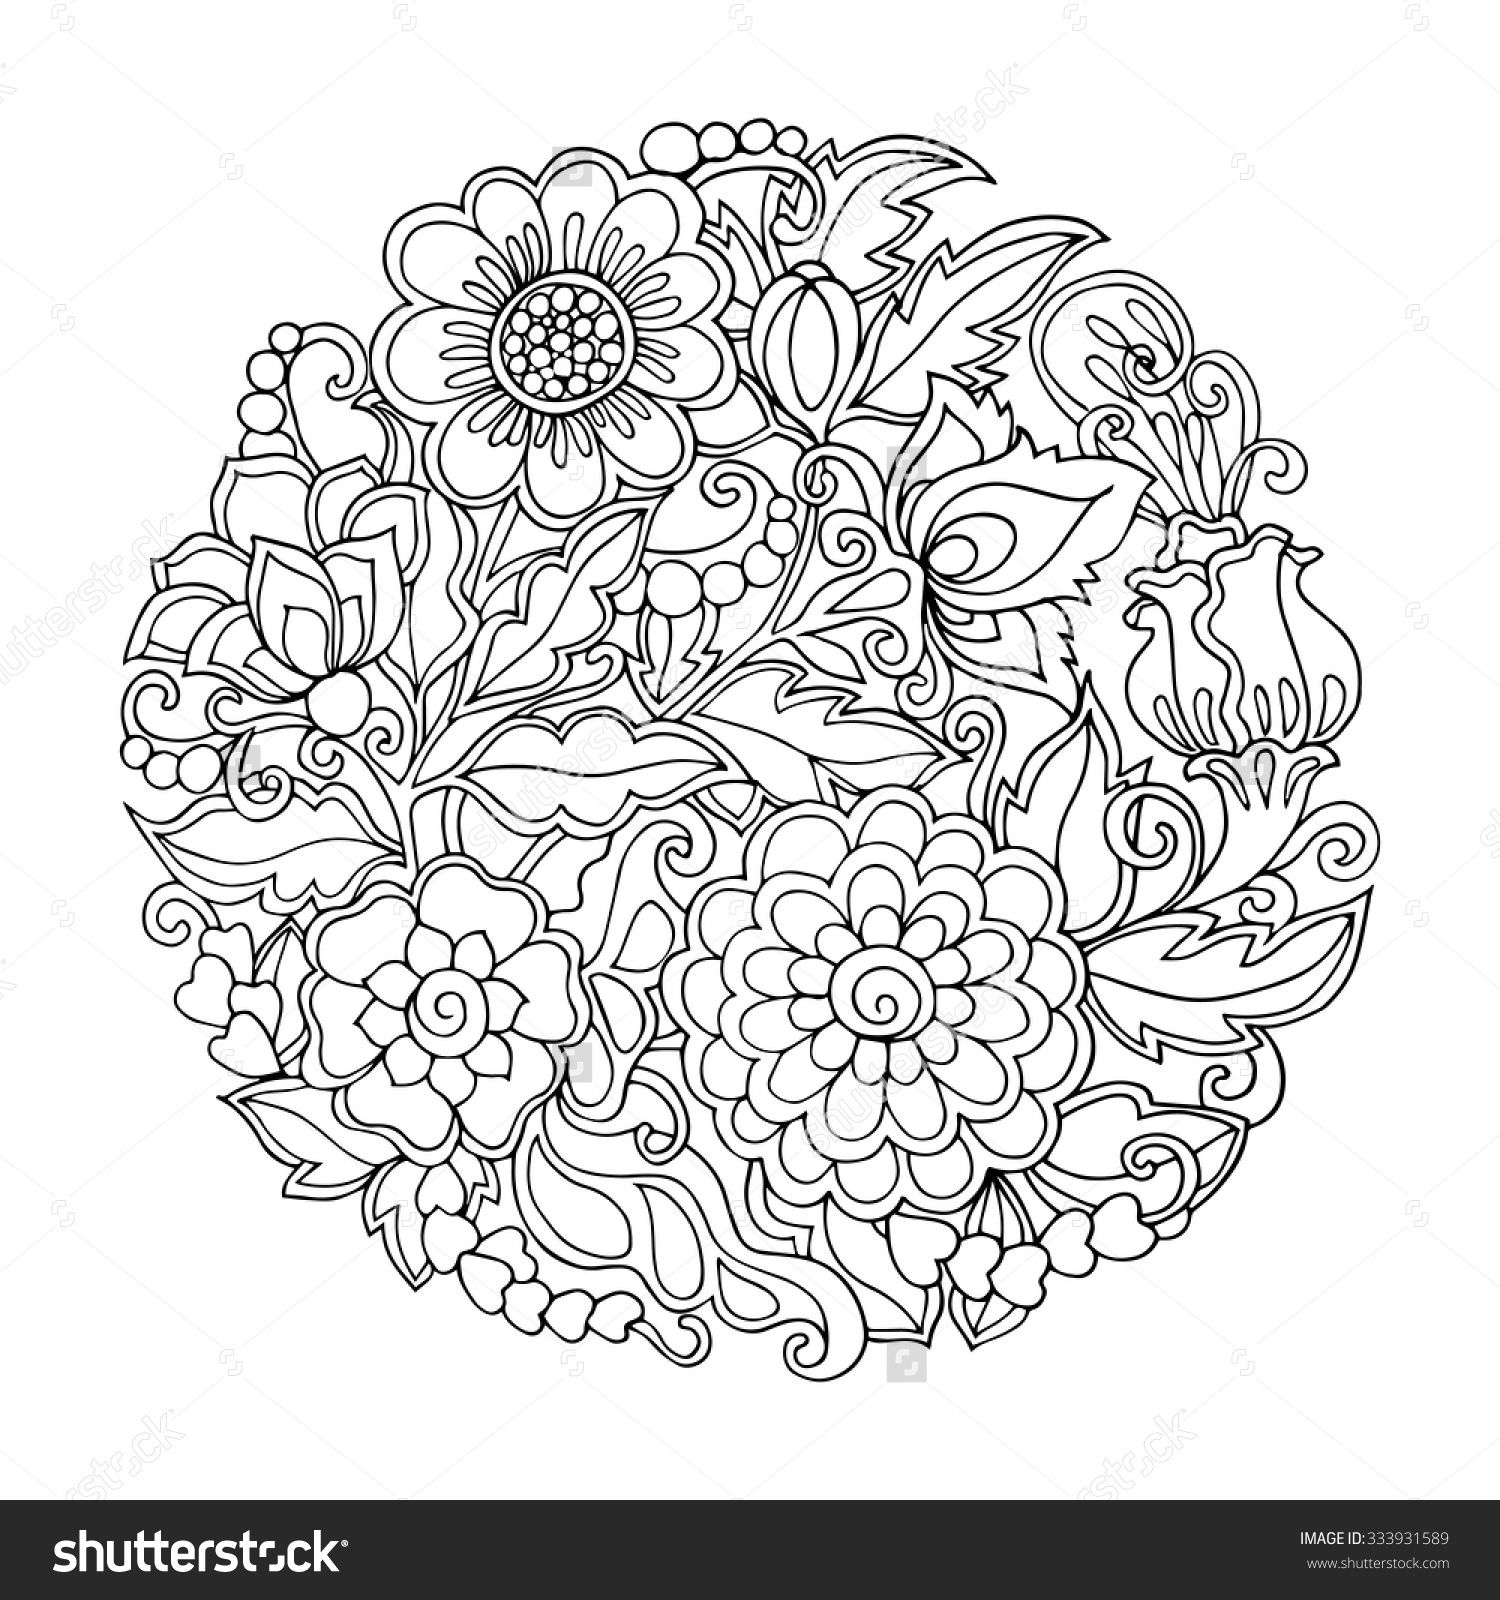 stock vector coloring book for adult and older - Chrysanthemum Book Coloring Pages